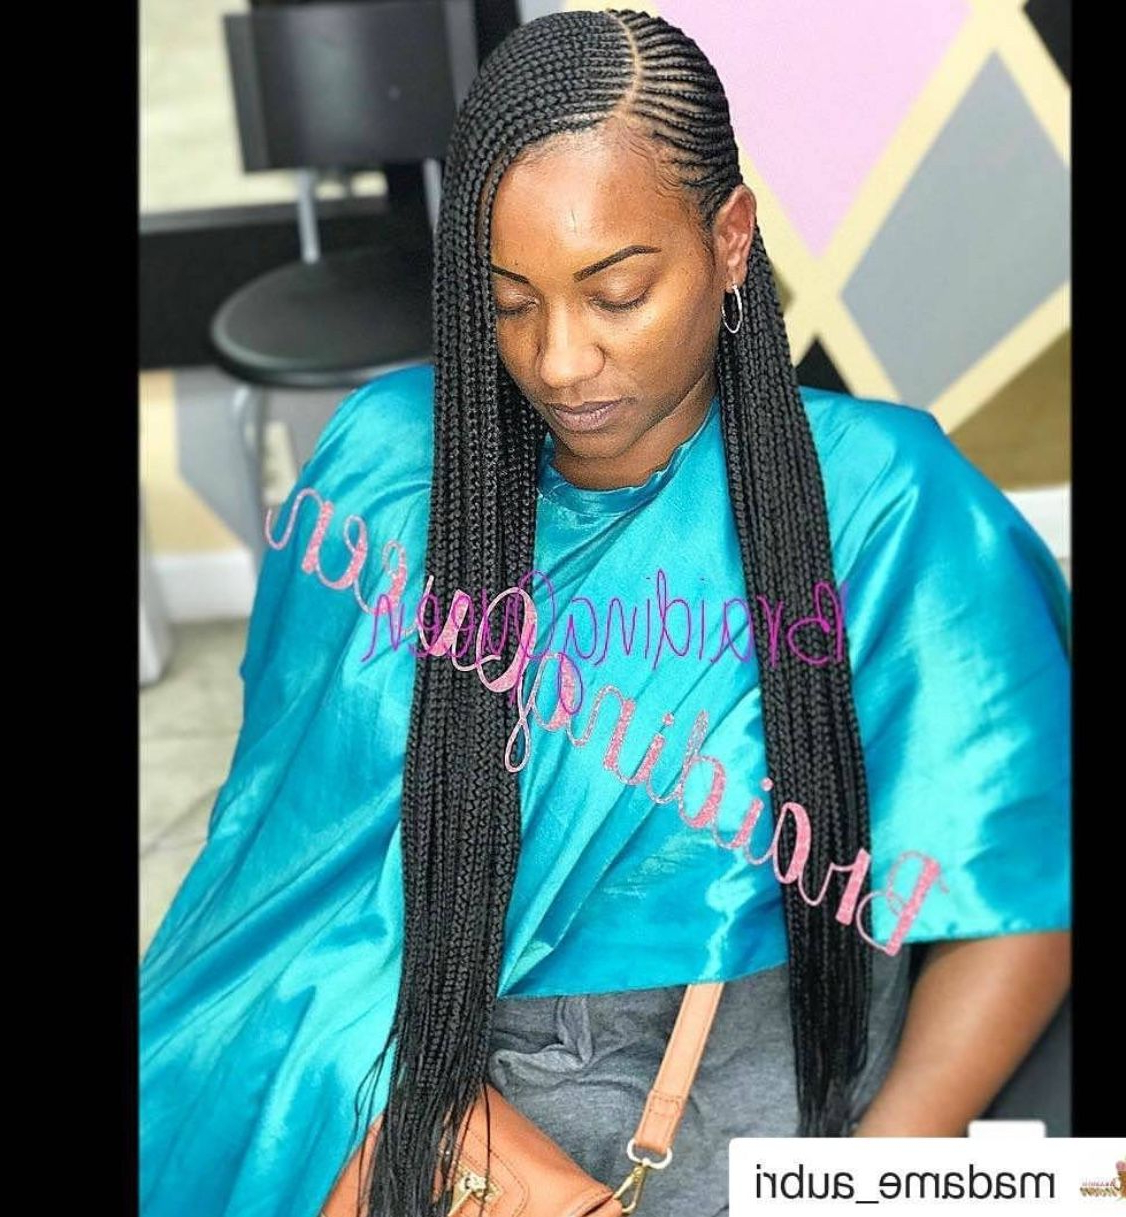 Braids, Hair Styles Within Most Current Mermaid Waves Hairstyles With Side Cornrows (View 4 of 20)